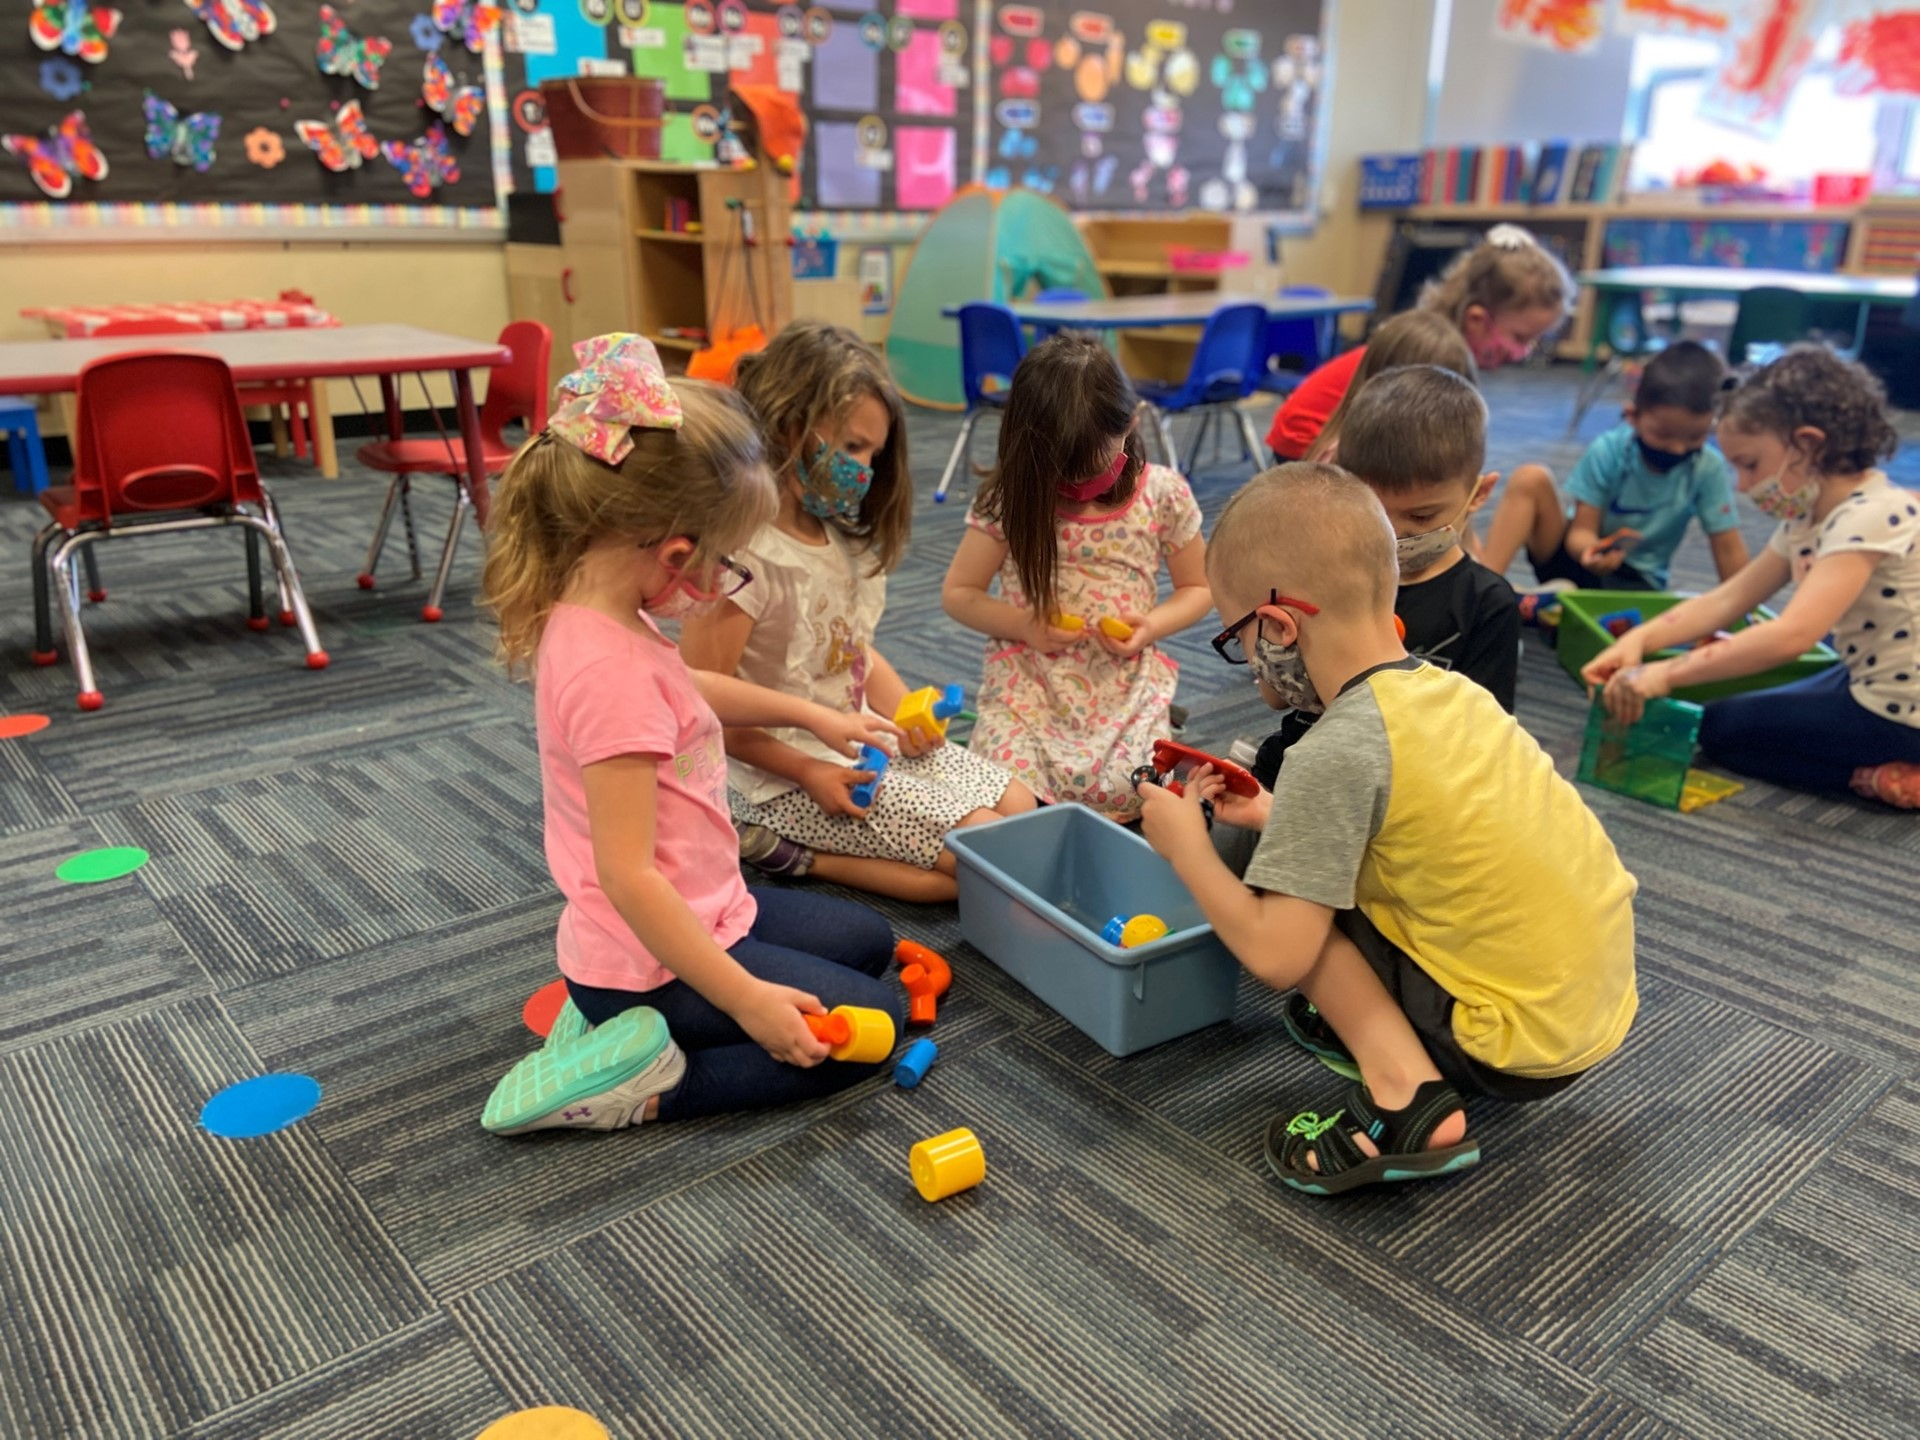 Students play with manipulatives in a group.